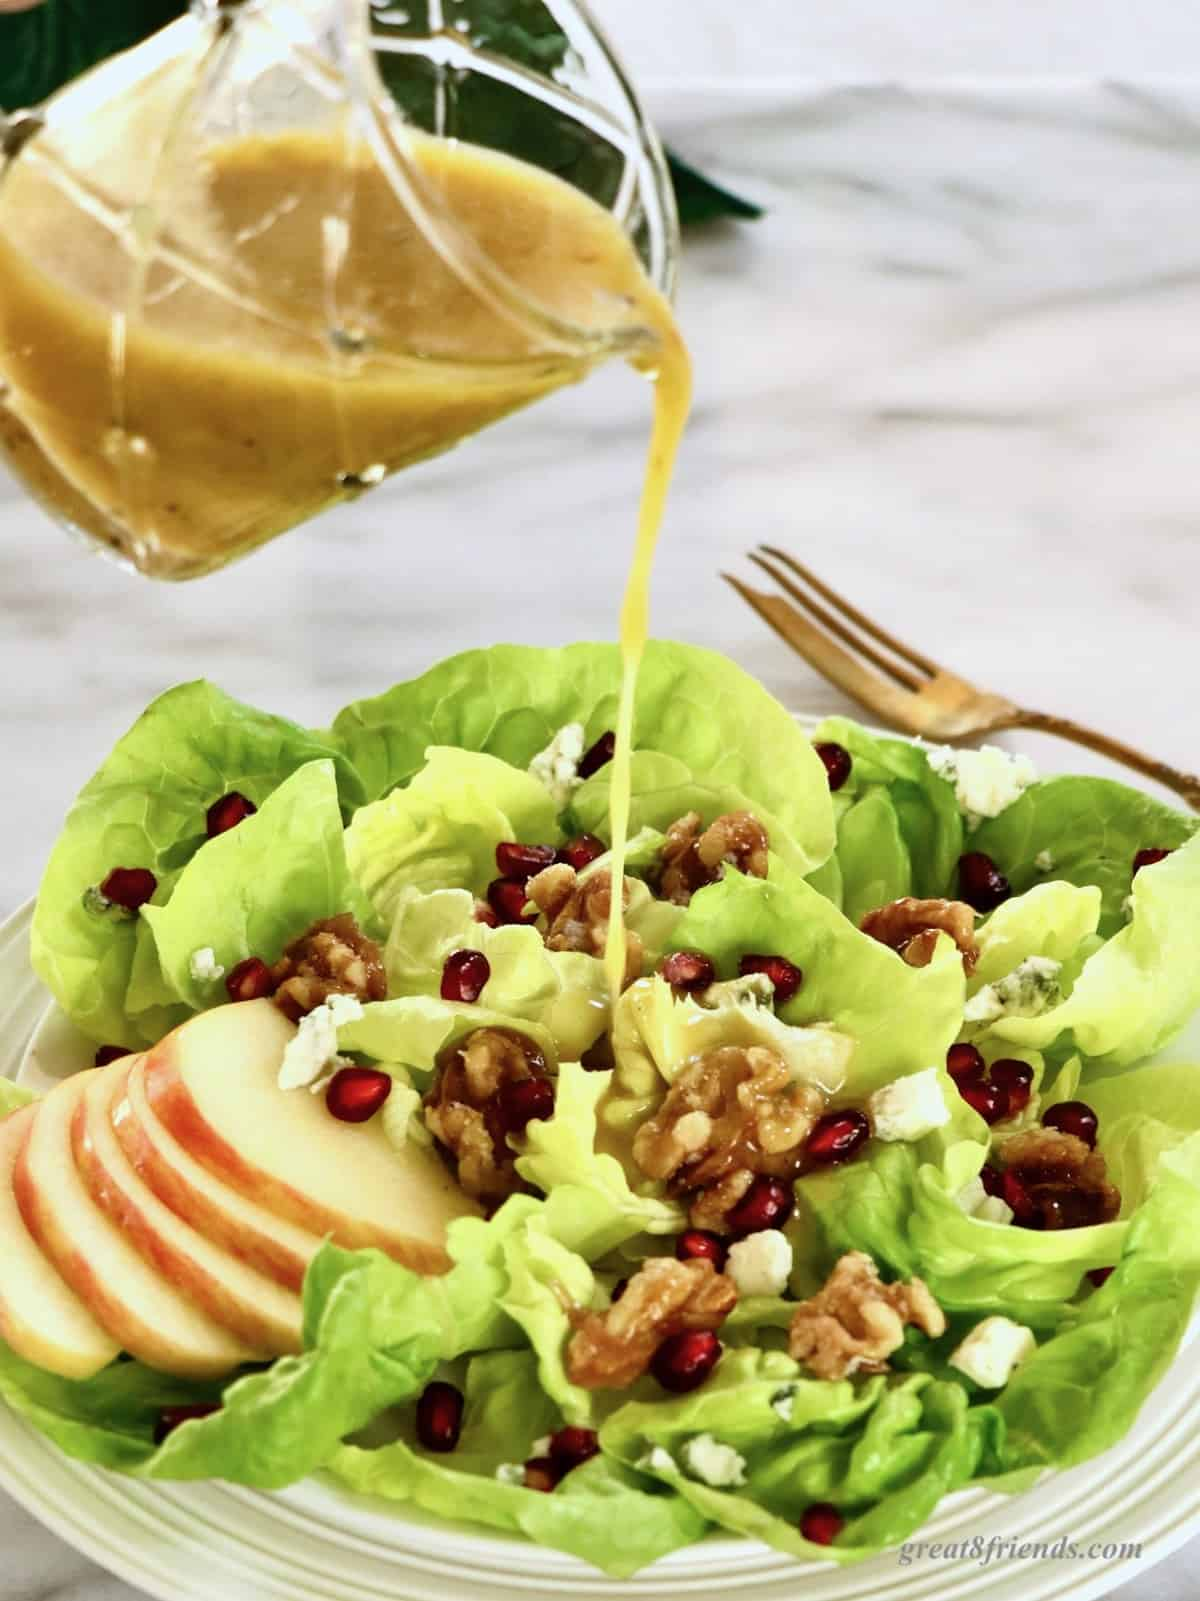 Dressing being poured on salad with walnuts, sliced apples, and pomegranate seed.